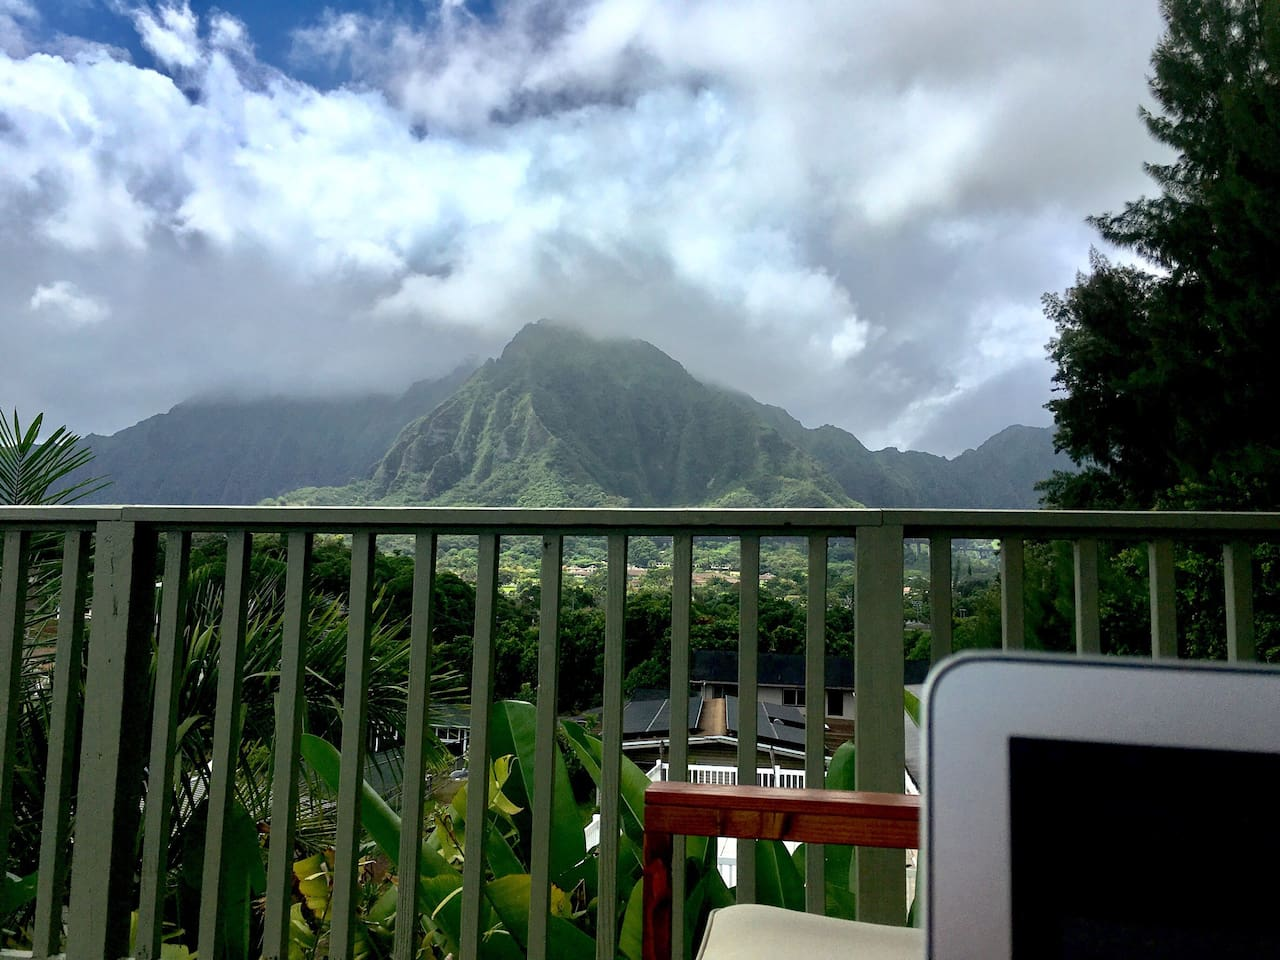 Working from the lanai